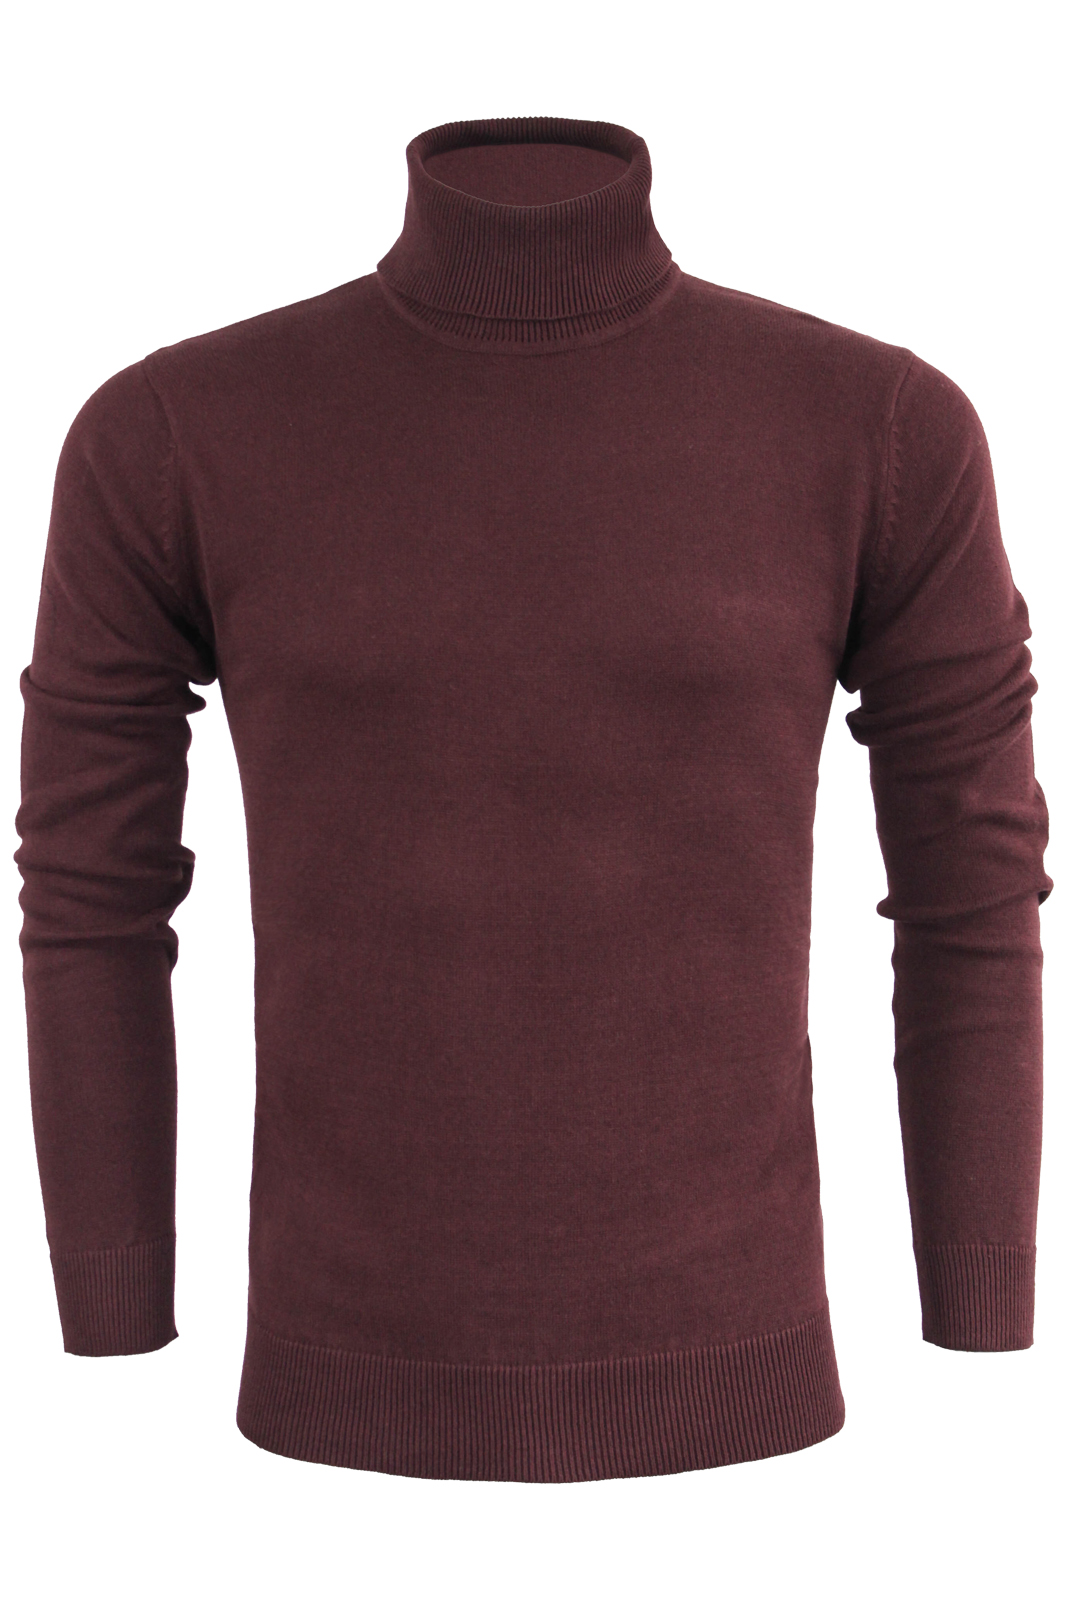 49283874e7c Details about Mens Jumper By Brave Soul Roll Neck Sweater Knitted Pullover  100% Cotton